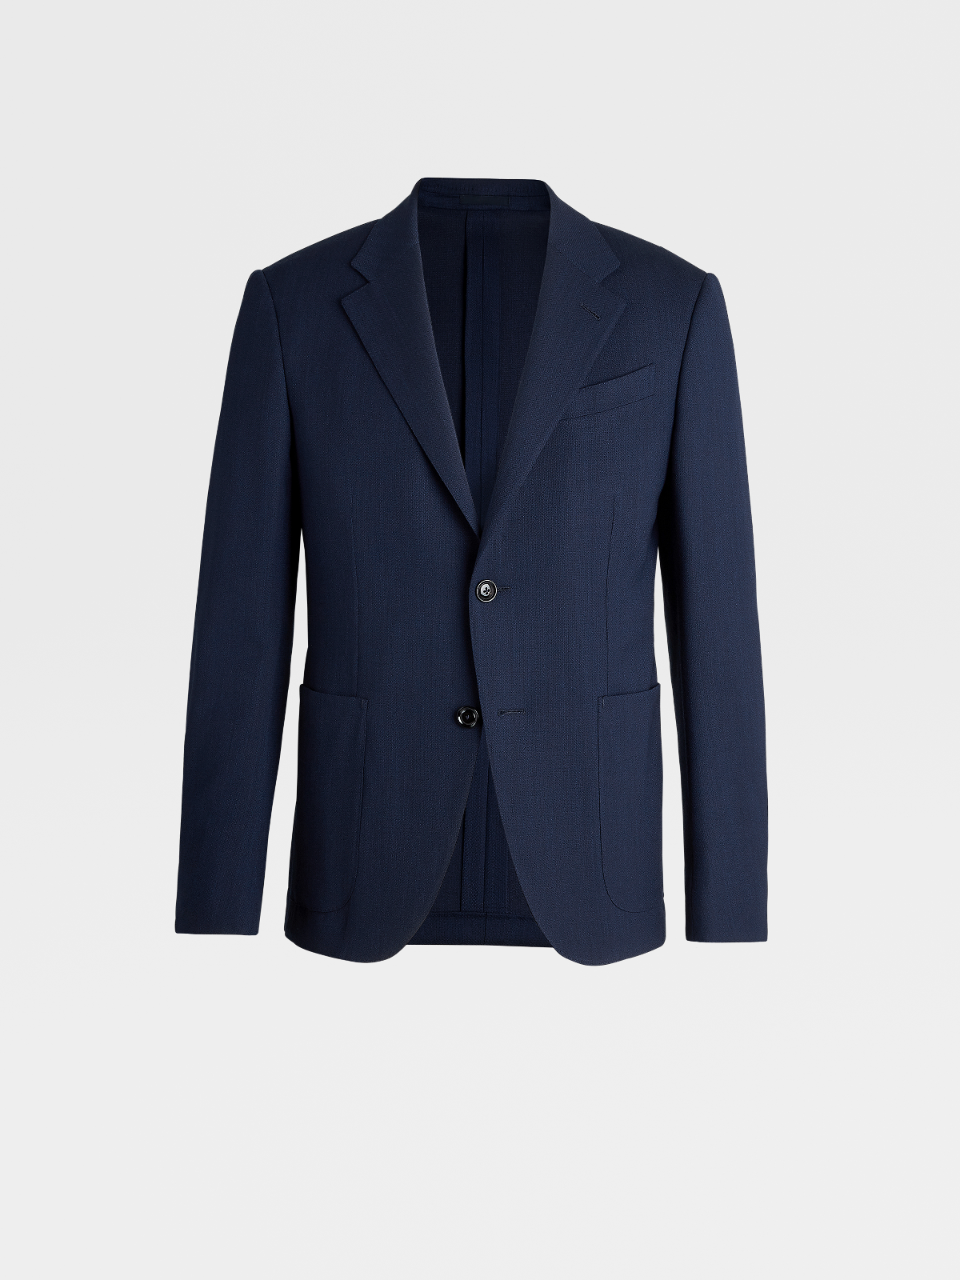 High Performance Wool Jacket Drop 8